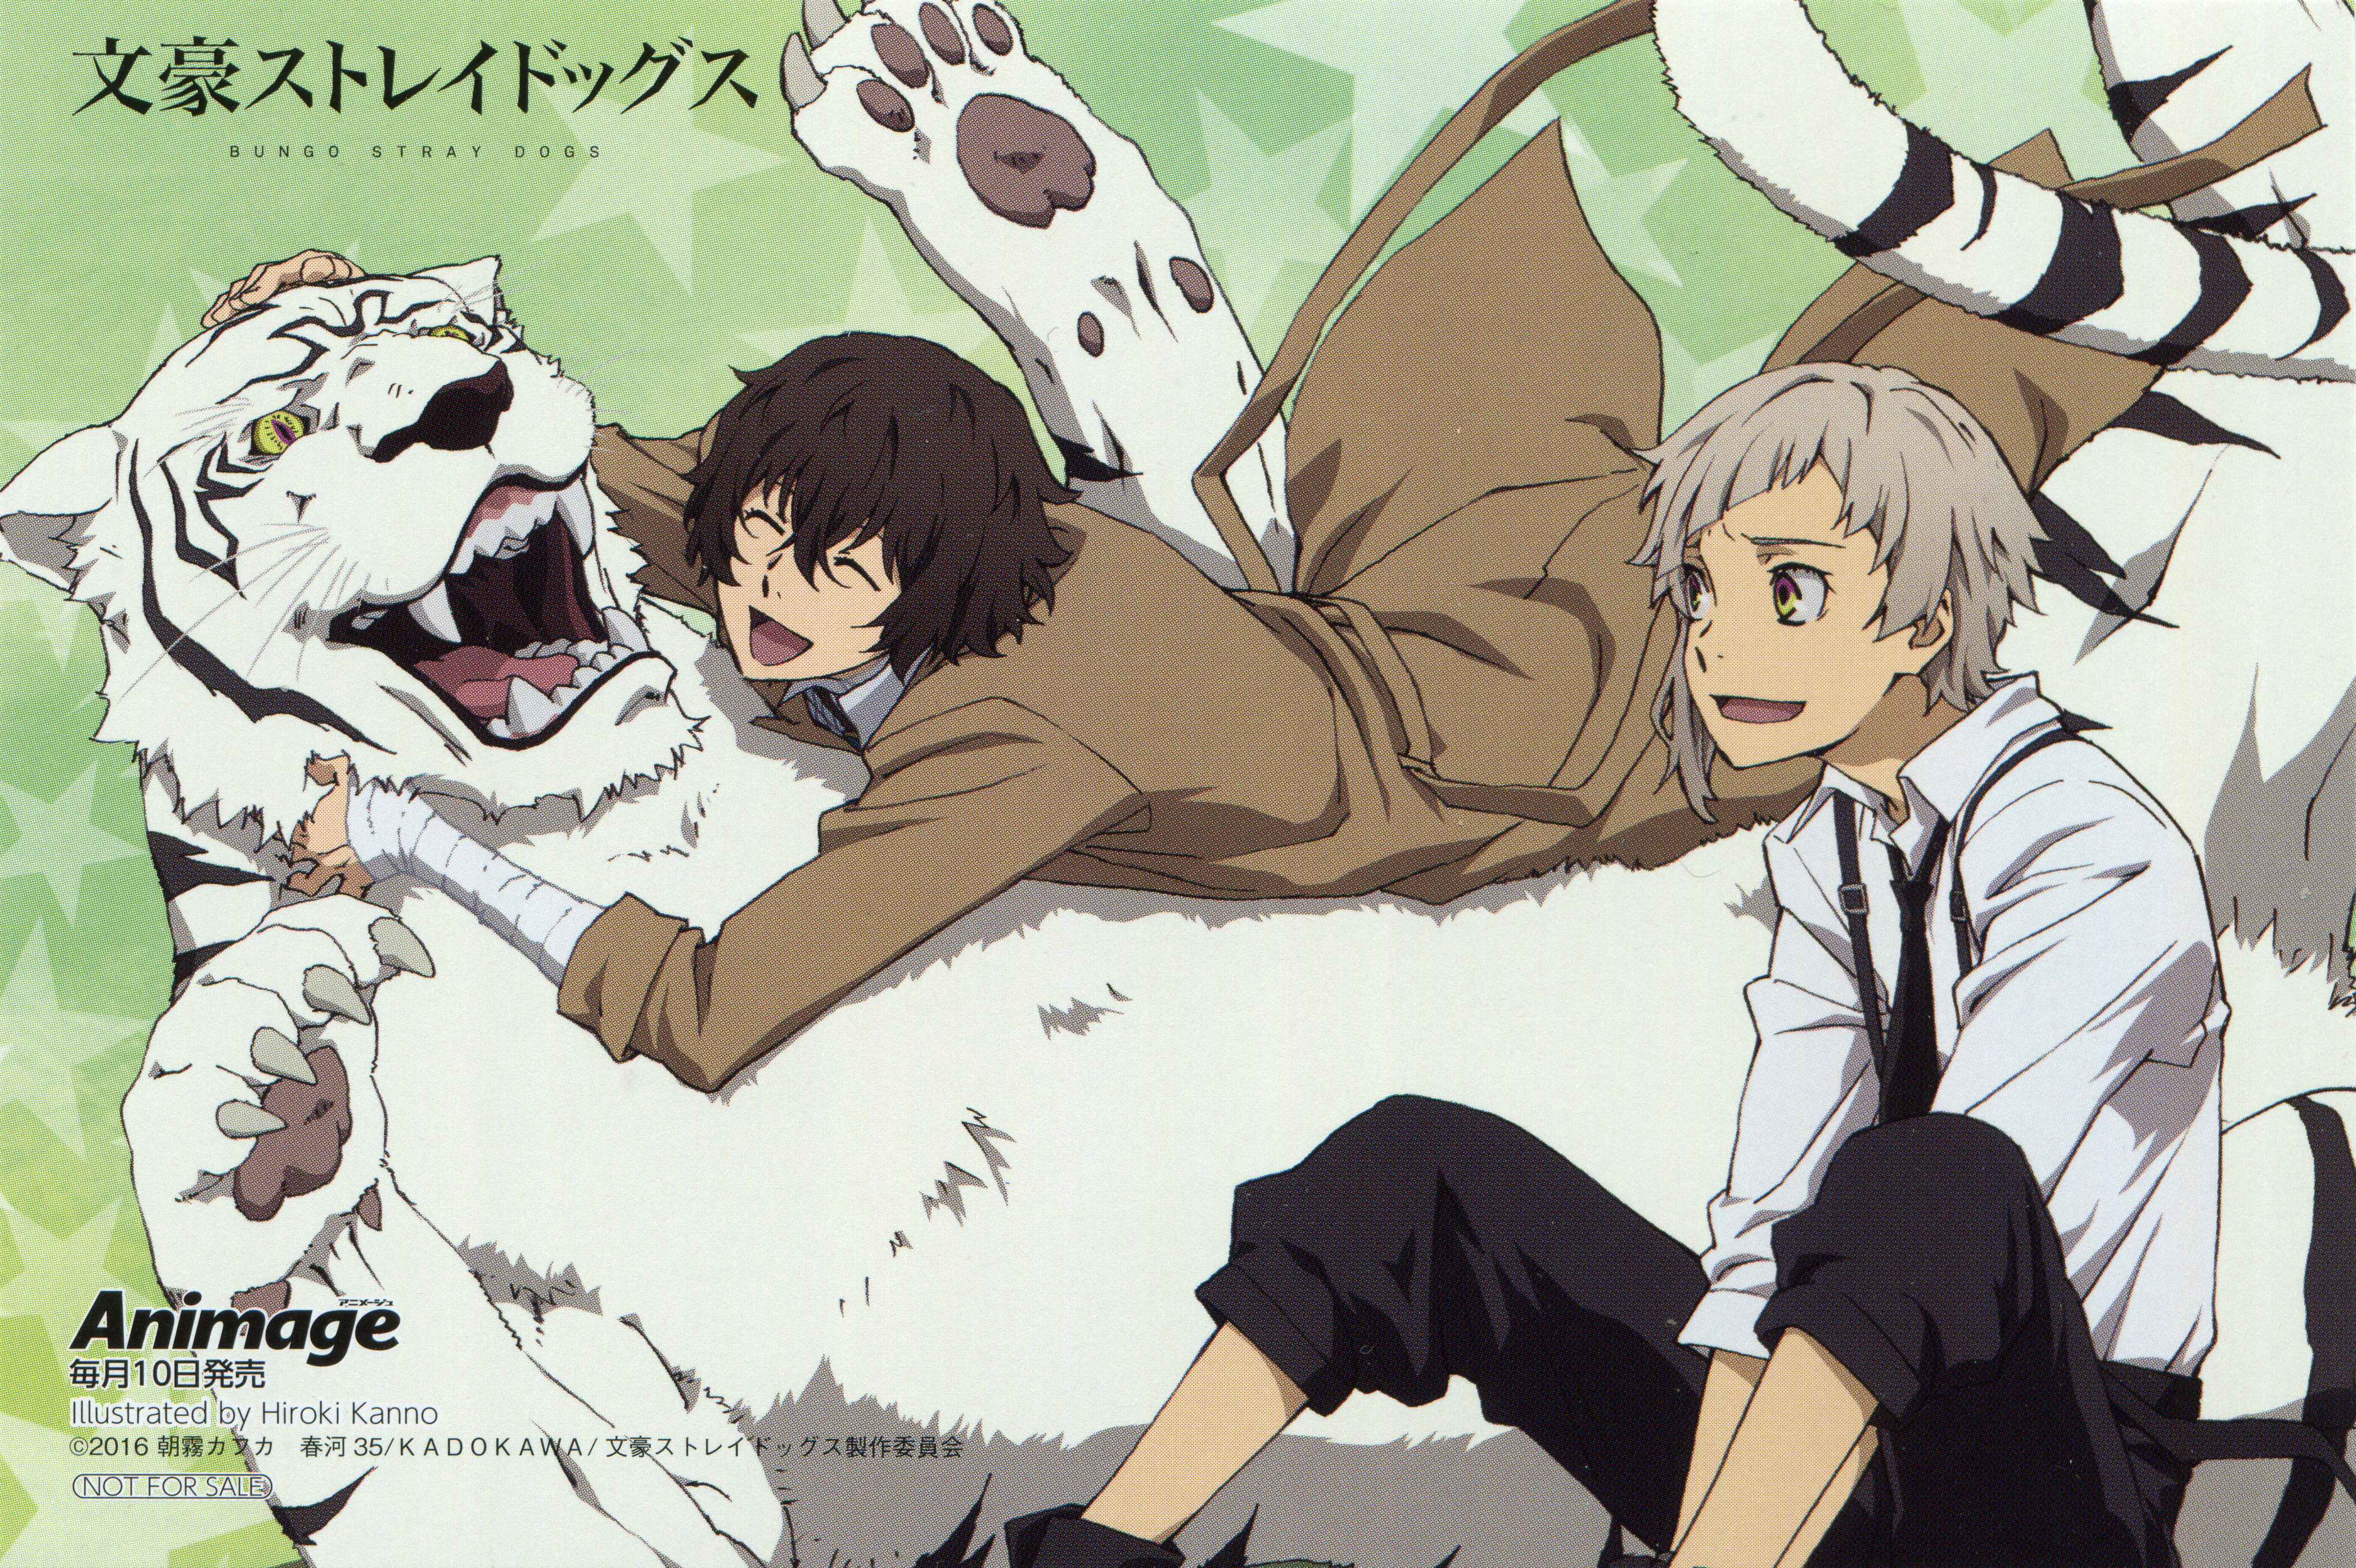 Bungou Stray Dogs Zerochan Anime Image Board